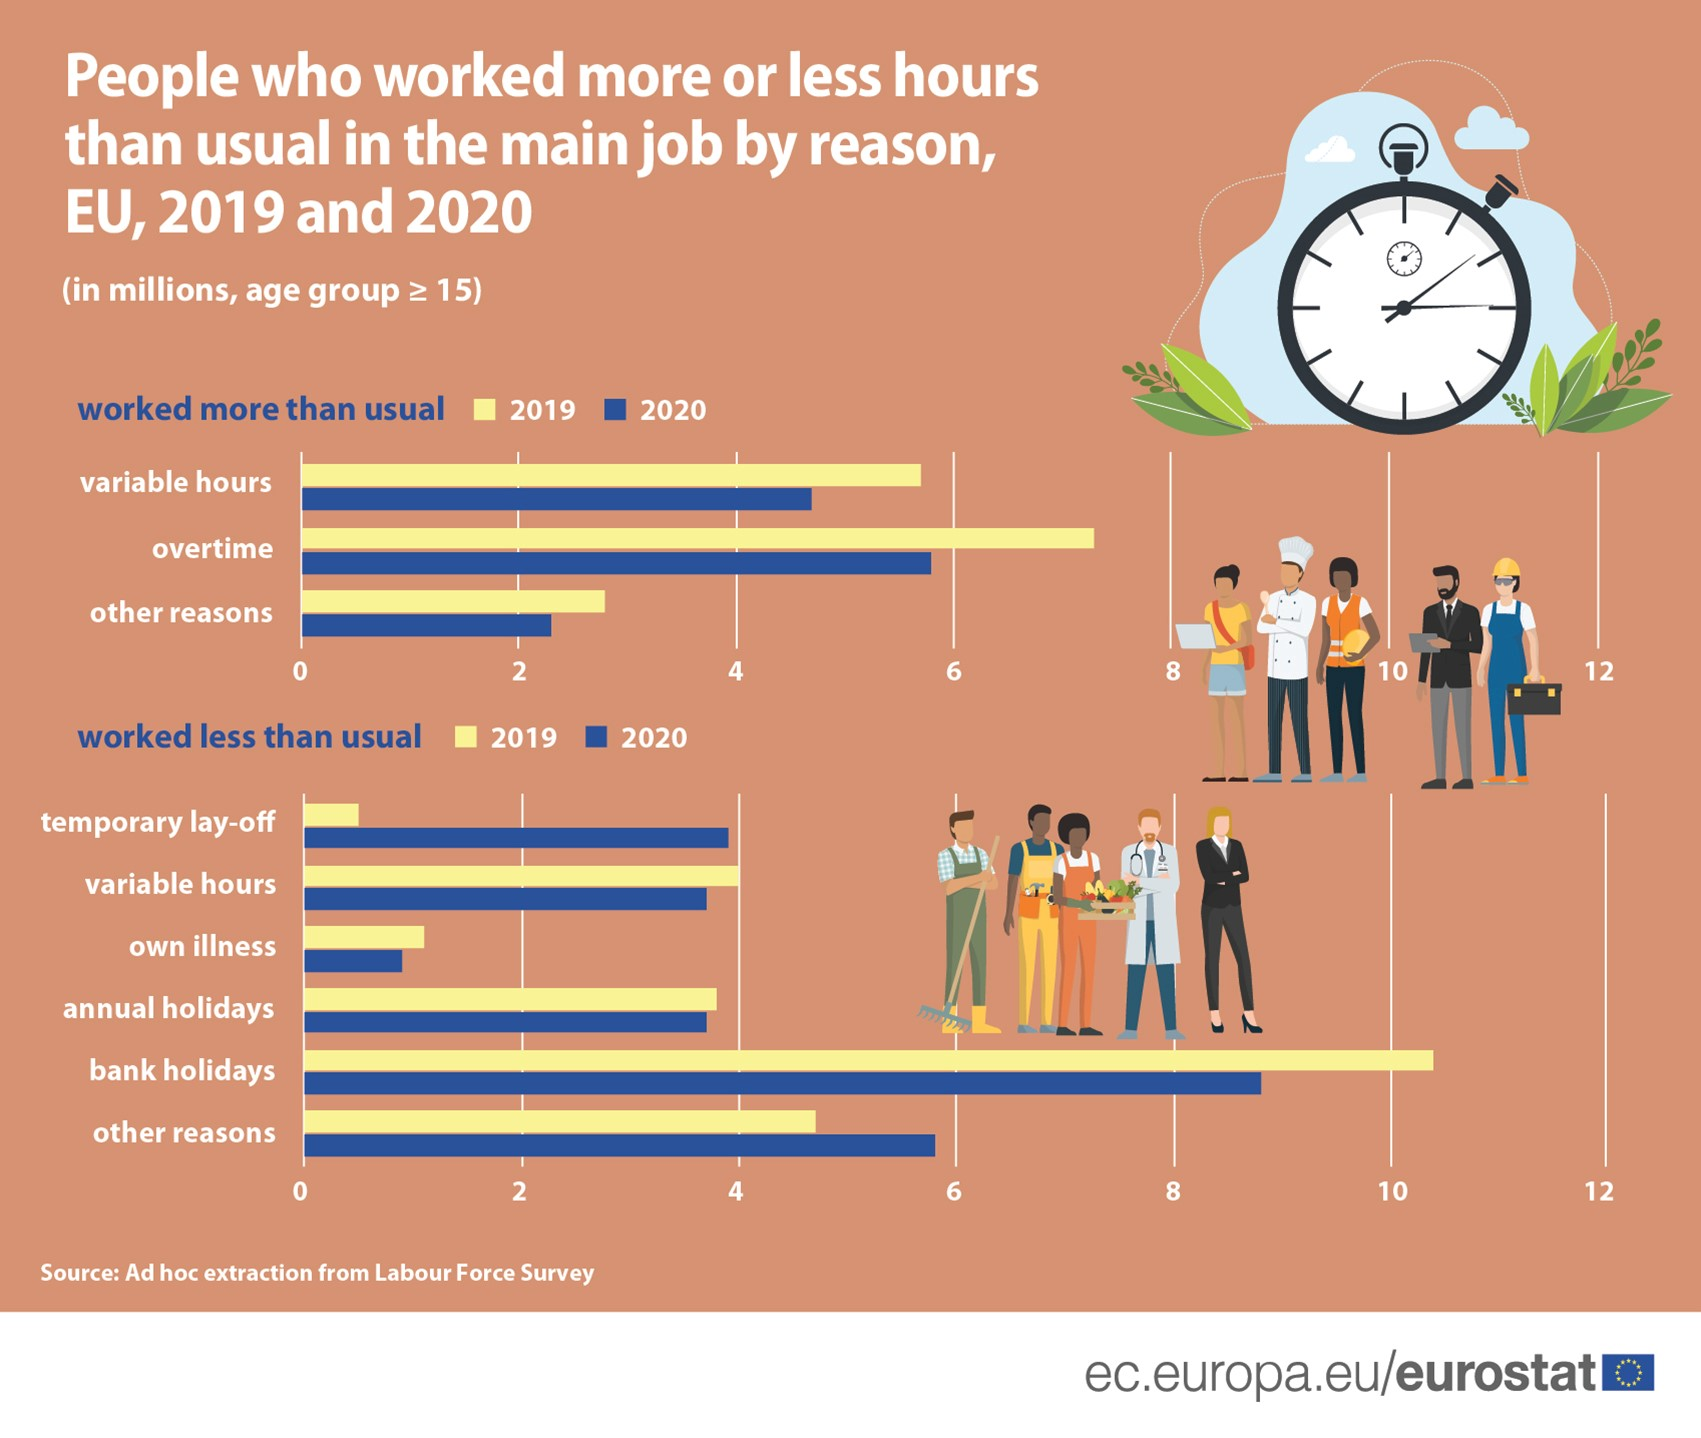 Bar chart: People who worked more or less hours than usual in the main job in the EU, by main reason, 2019 and 2020 data, in millions